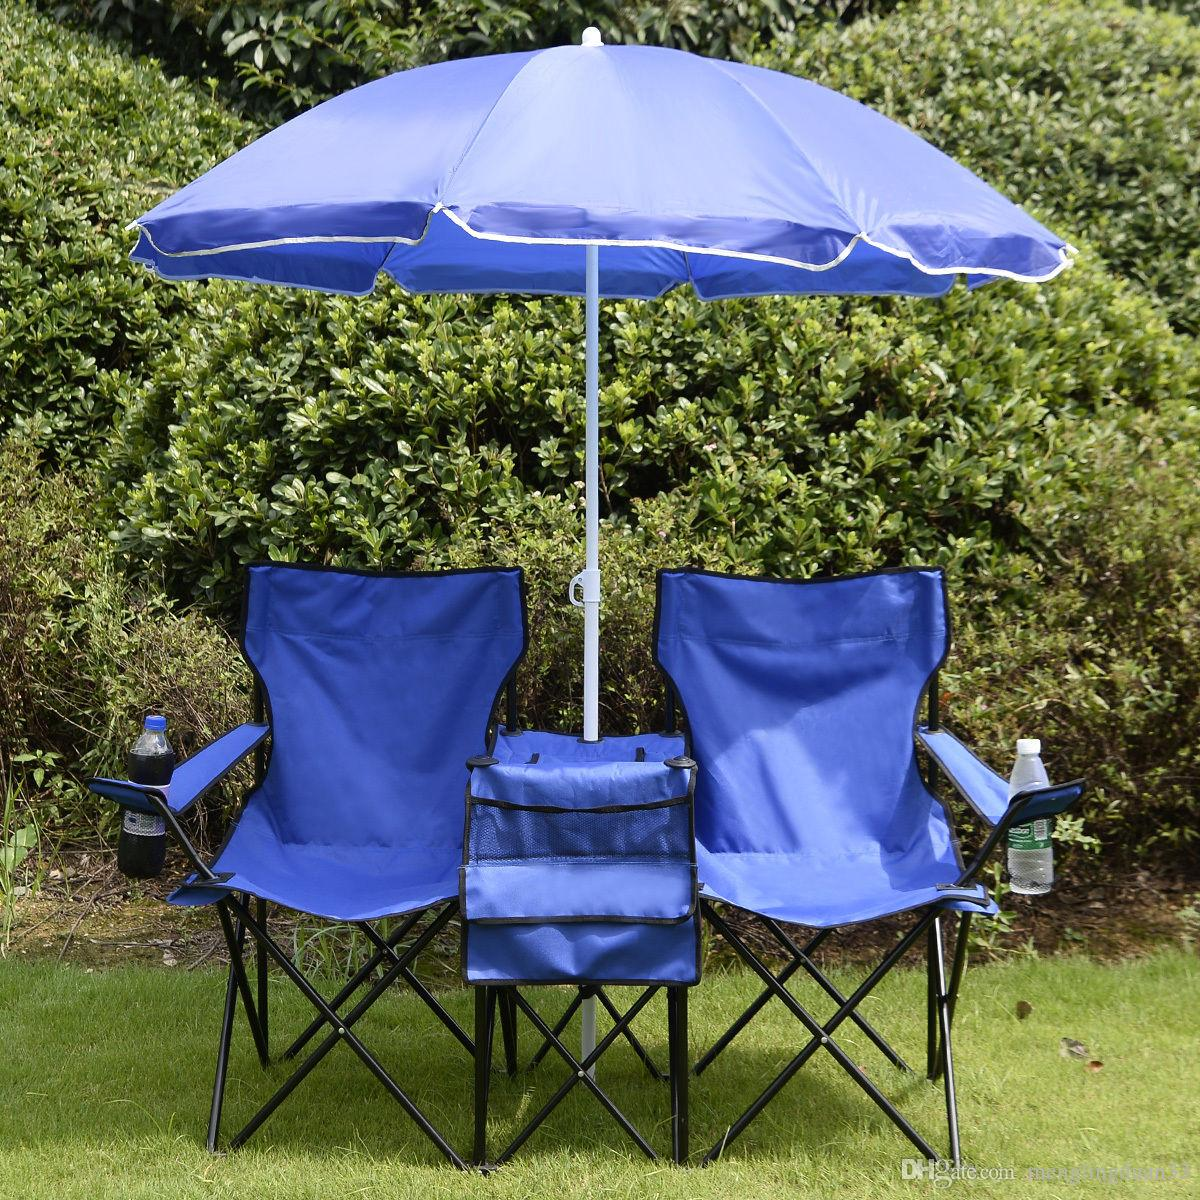 Portable Folding Picnic Double Chair Umbrella Table Cooler Beach Camping Gear Outdoor Furniture Uk From Menglingduan33 3115